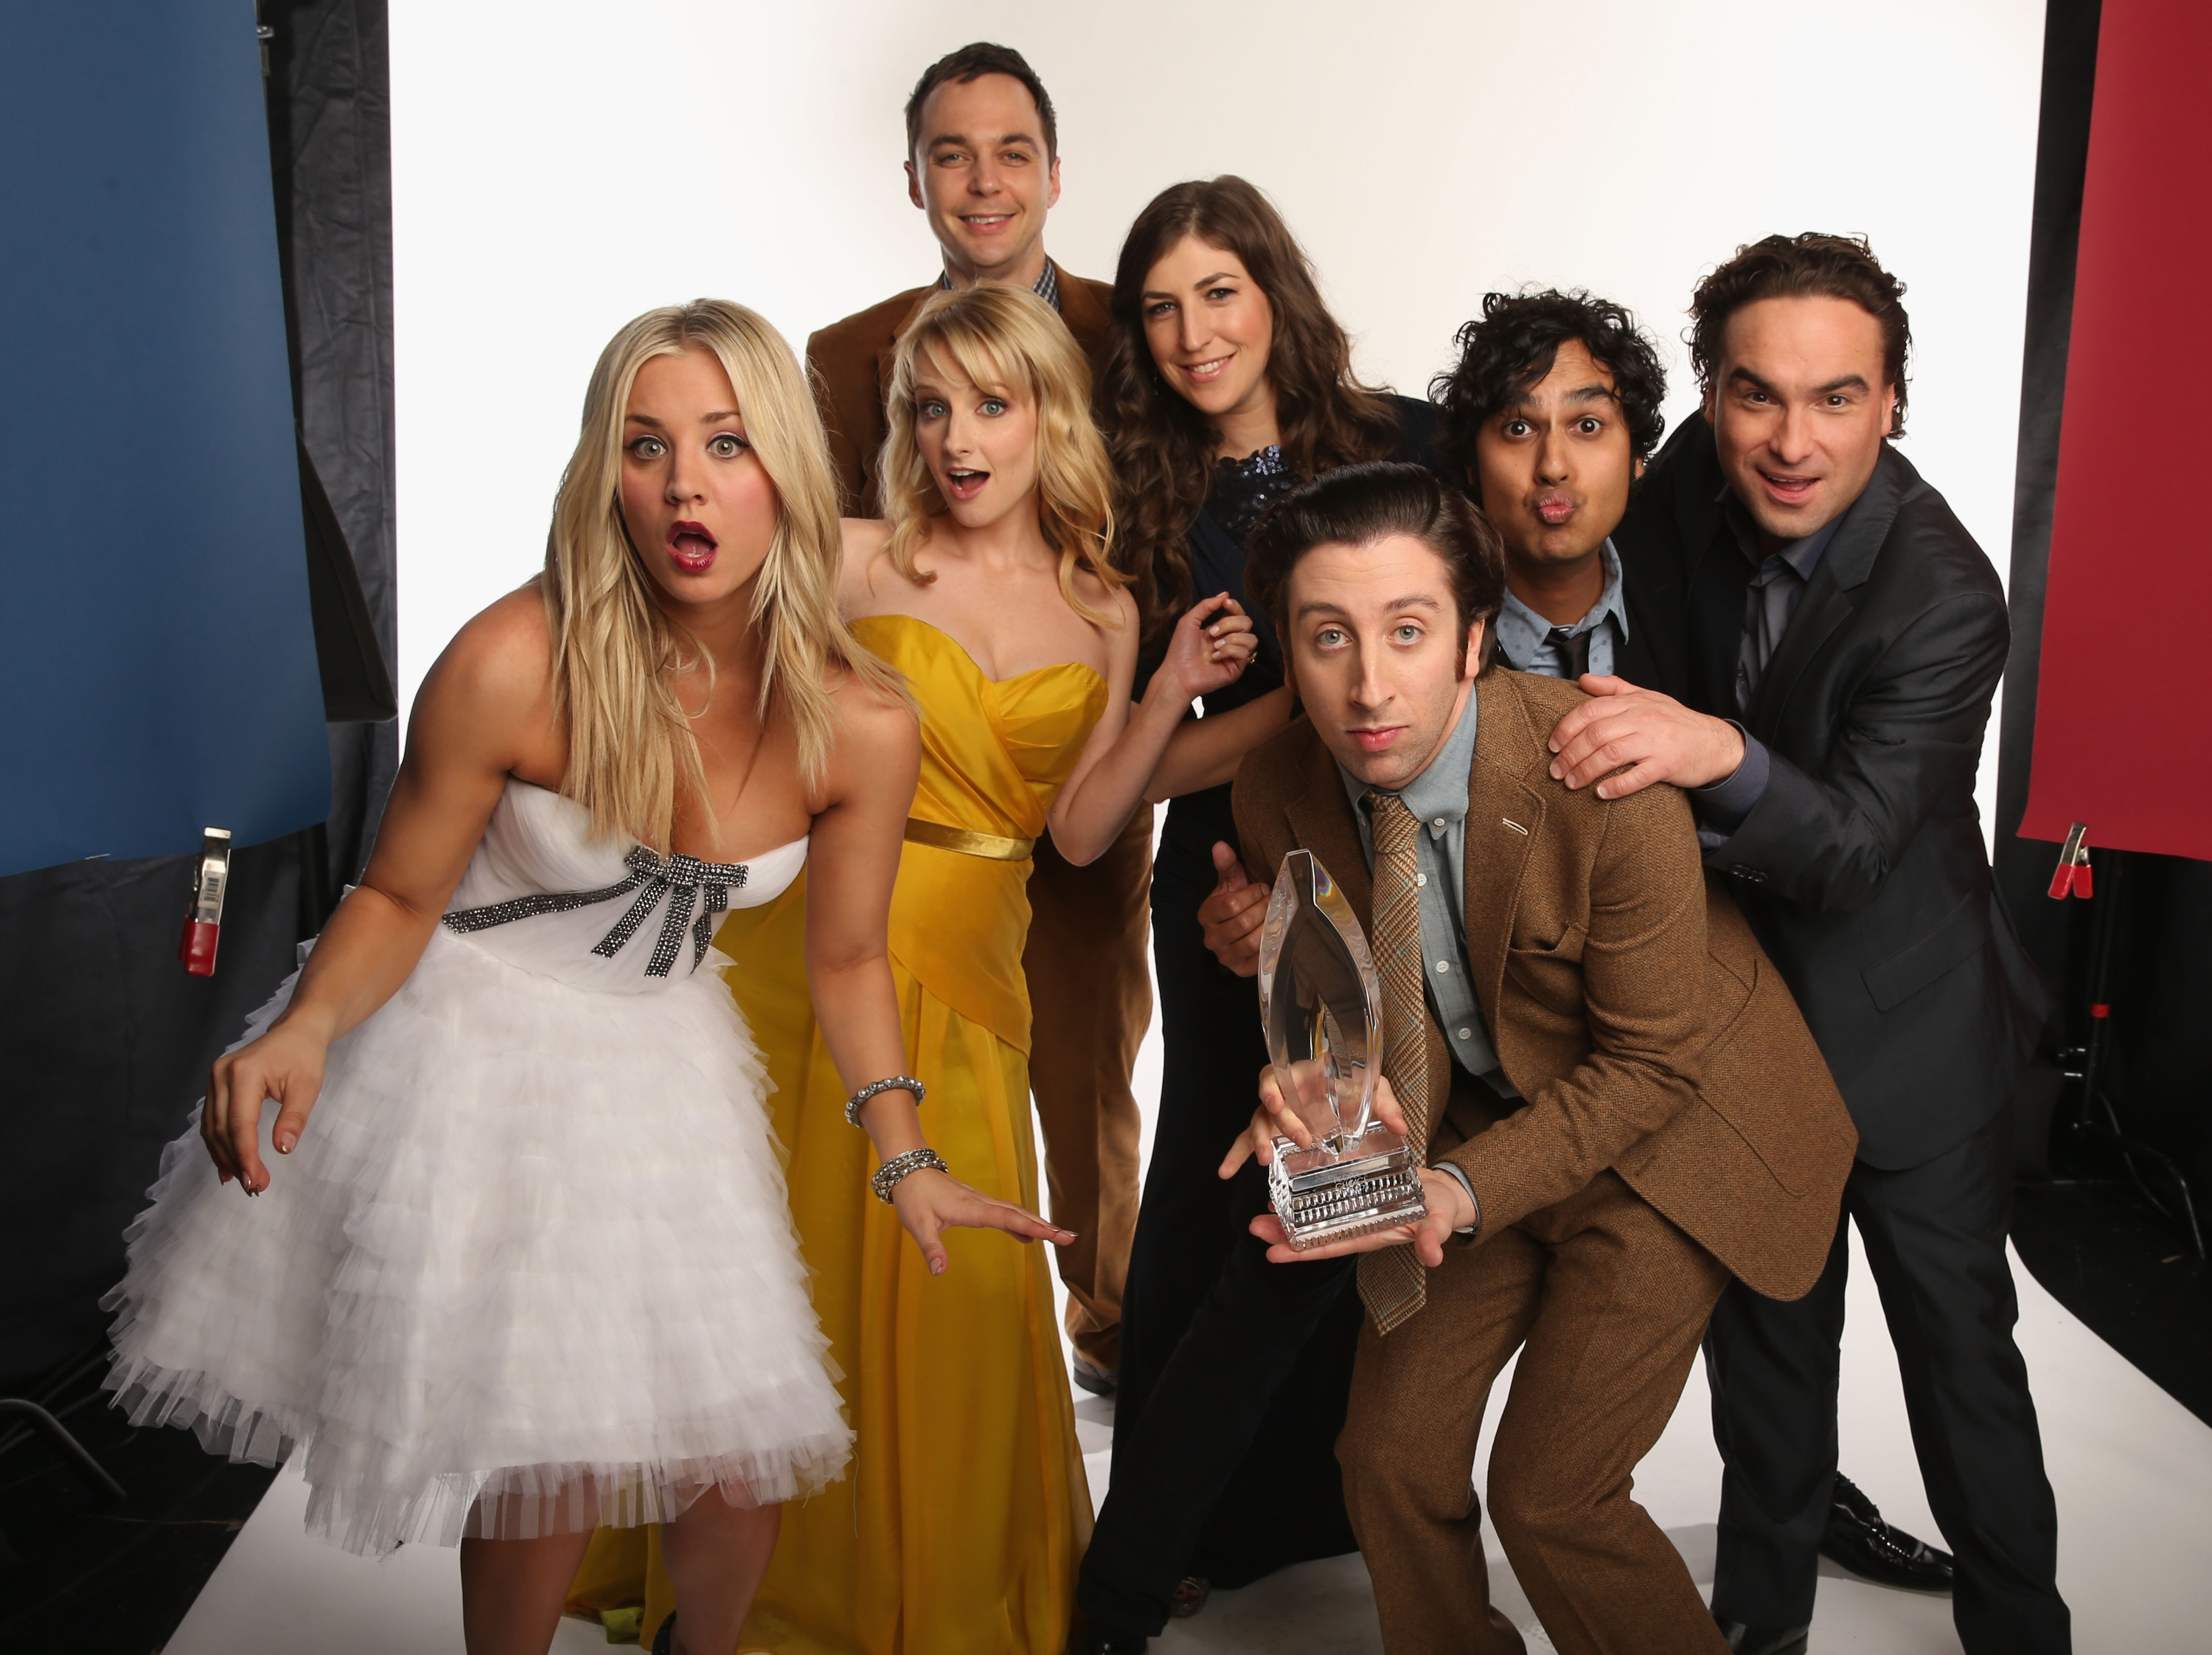 Why the Stars of 'Big Bang Theory' Deserve Big Bucks